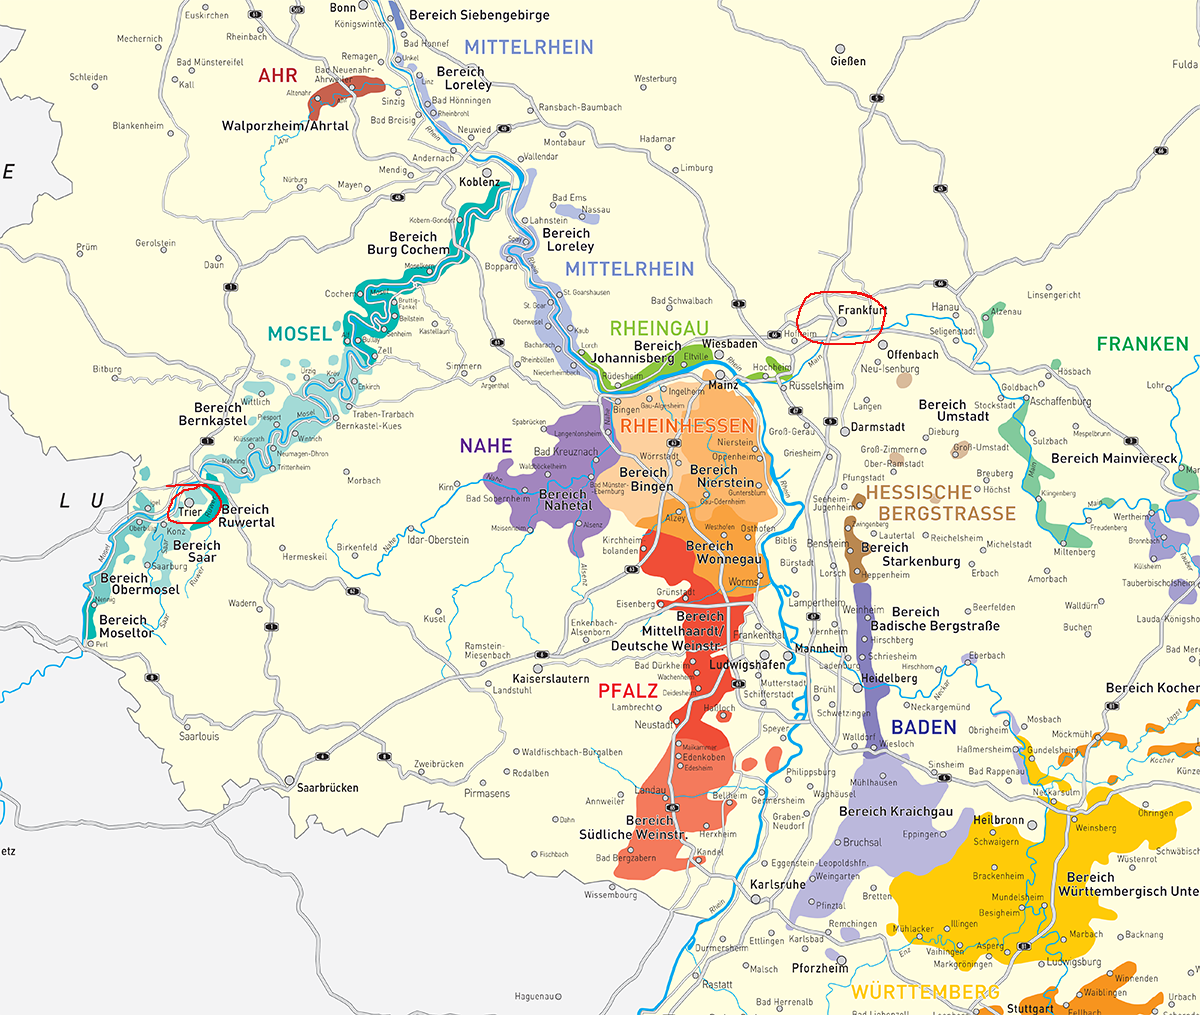 Carte Vin Allemagne.Guide To Riesling Wine Maps Cartes De Vin Riesling